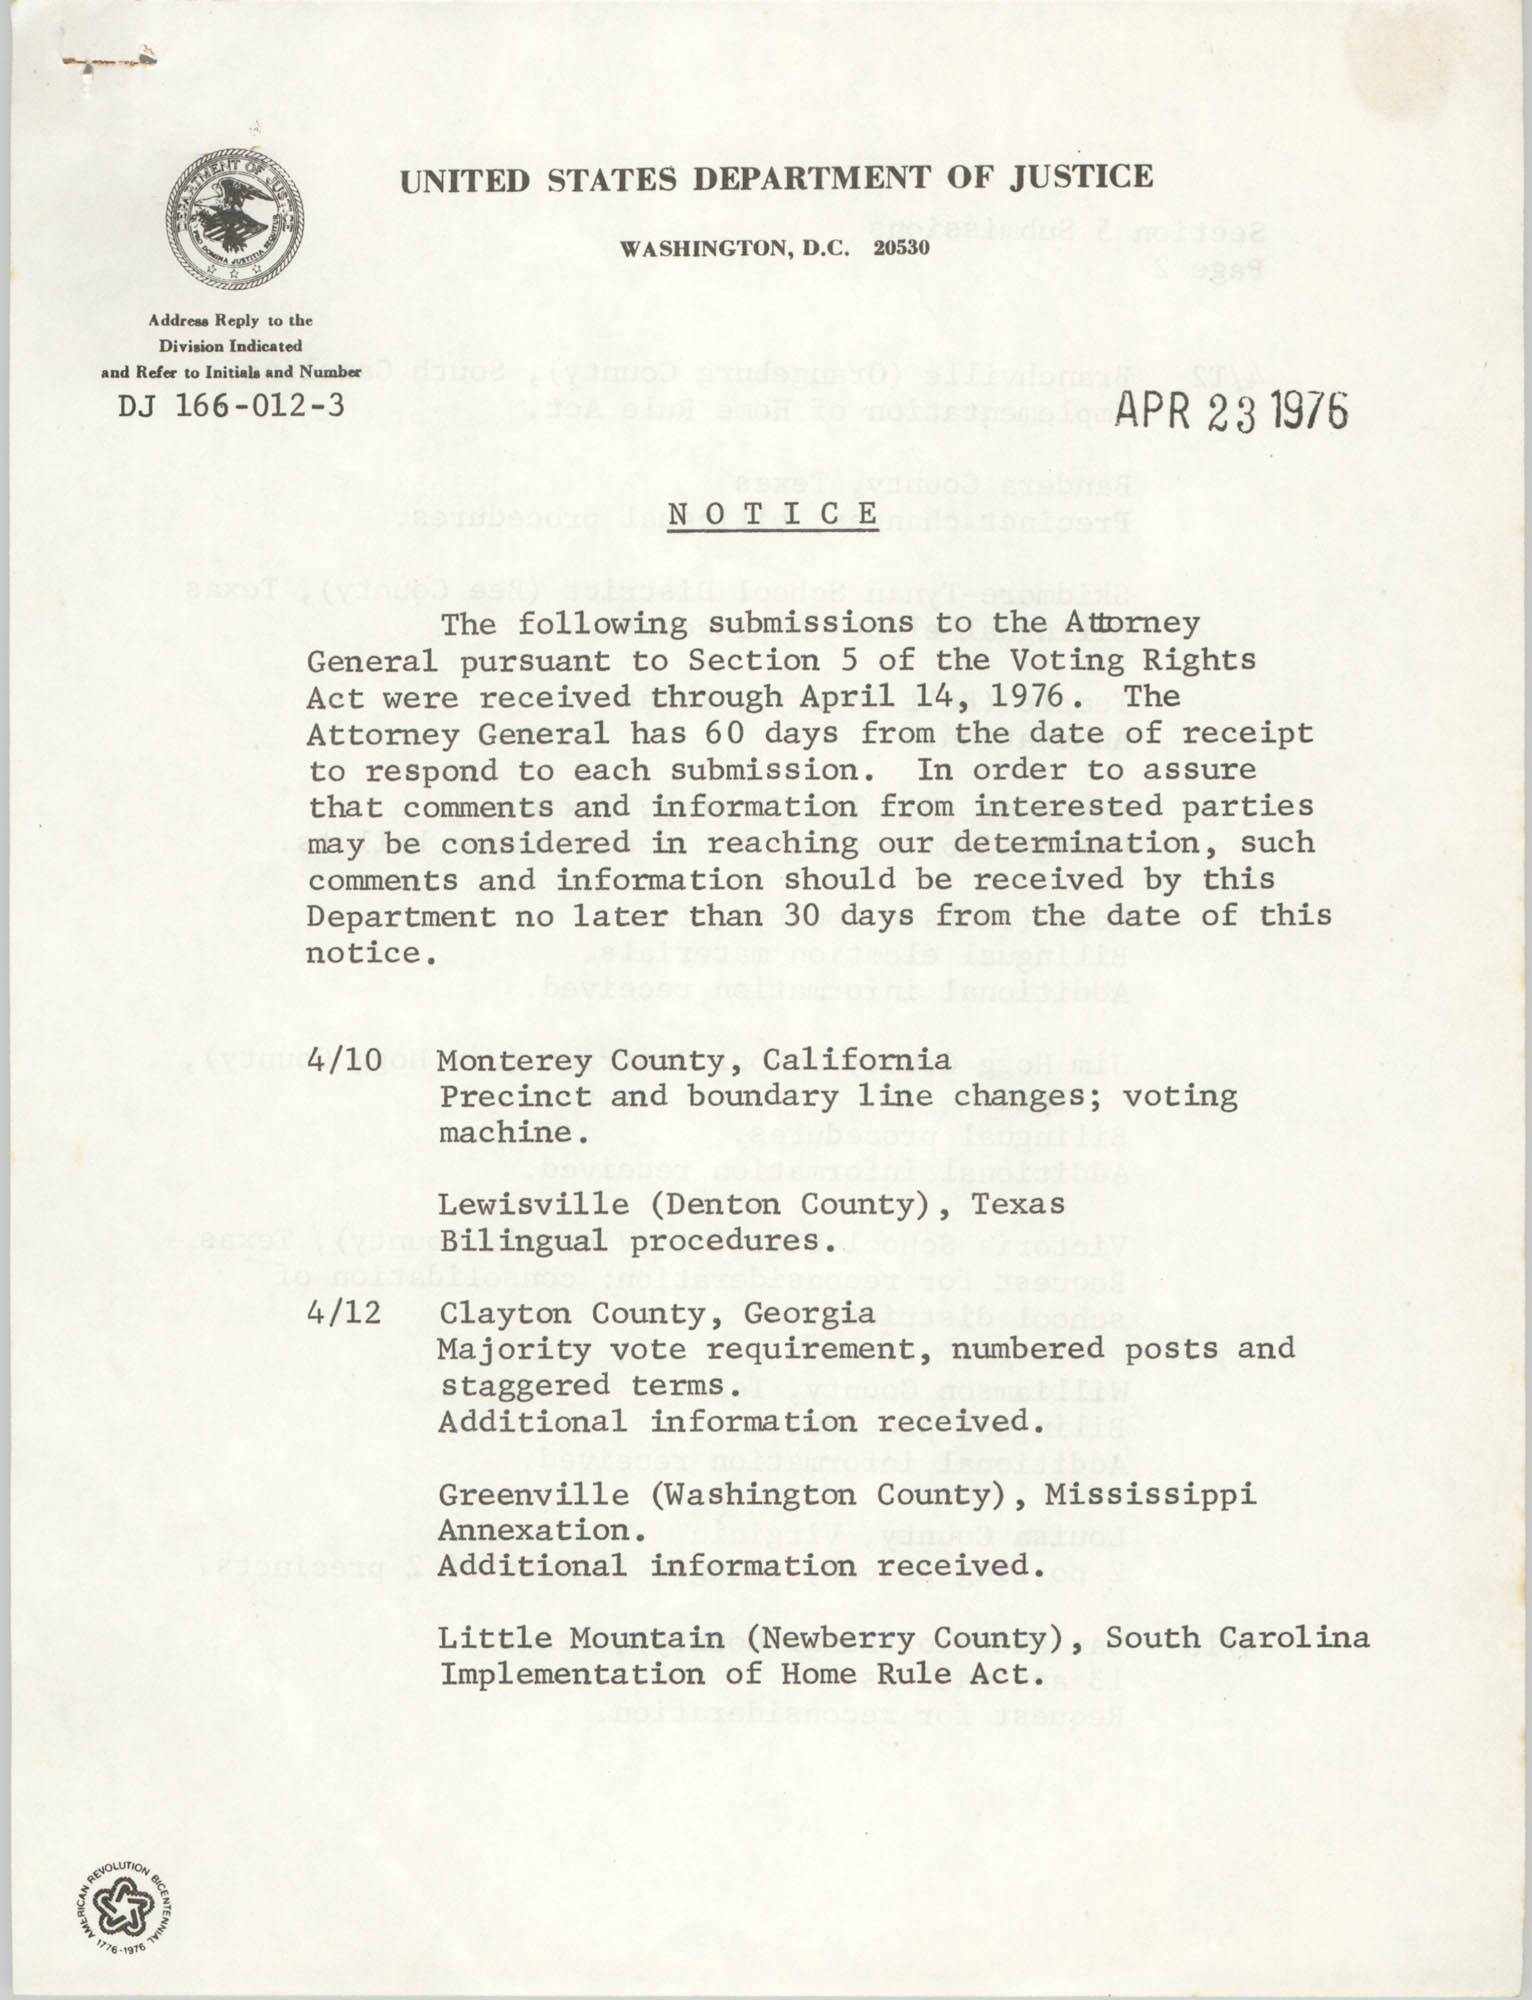 United States Department of Justice Notice, April 23, 1976, Page 1